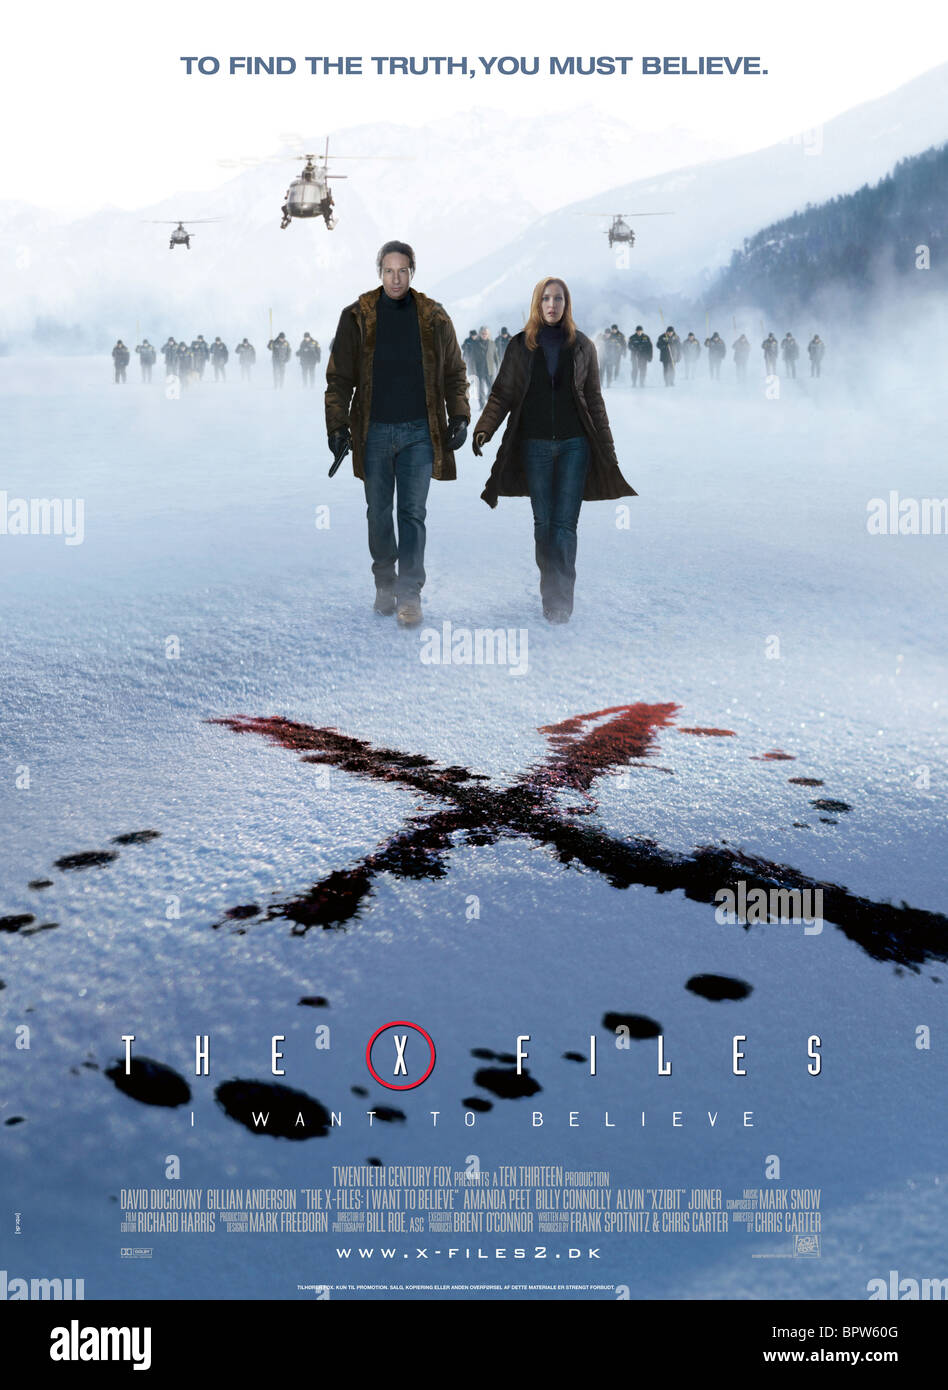 DAVID DUCHOVNY & GILLIAN ANDERSON POSTER THE X-FILES 2 : THE MOVIE (2008) - Stock Image